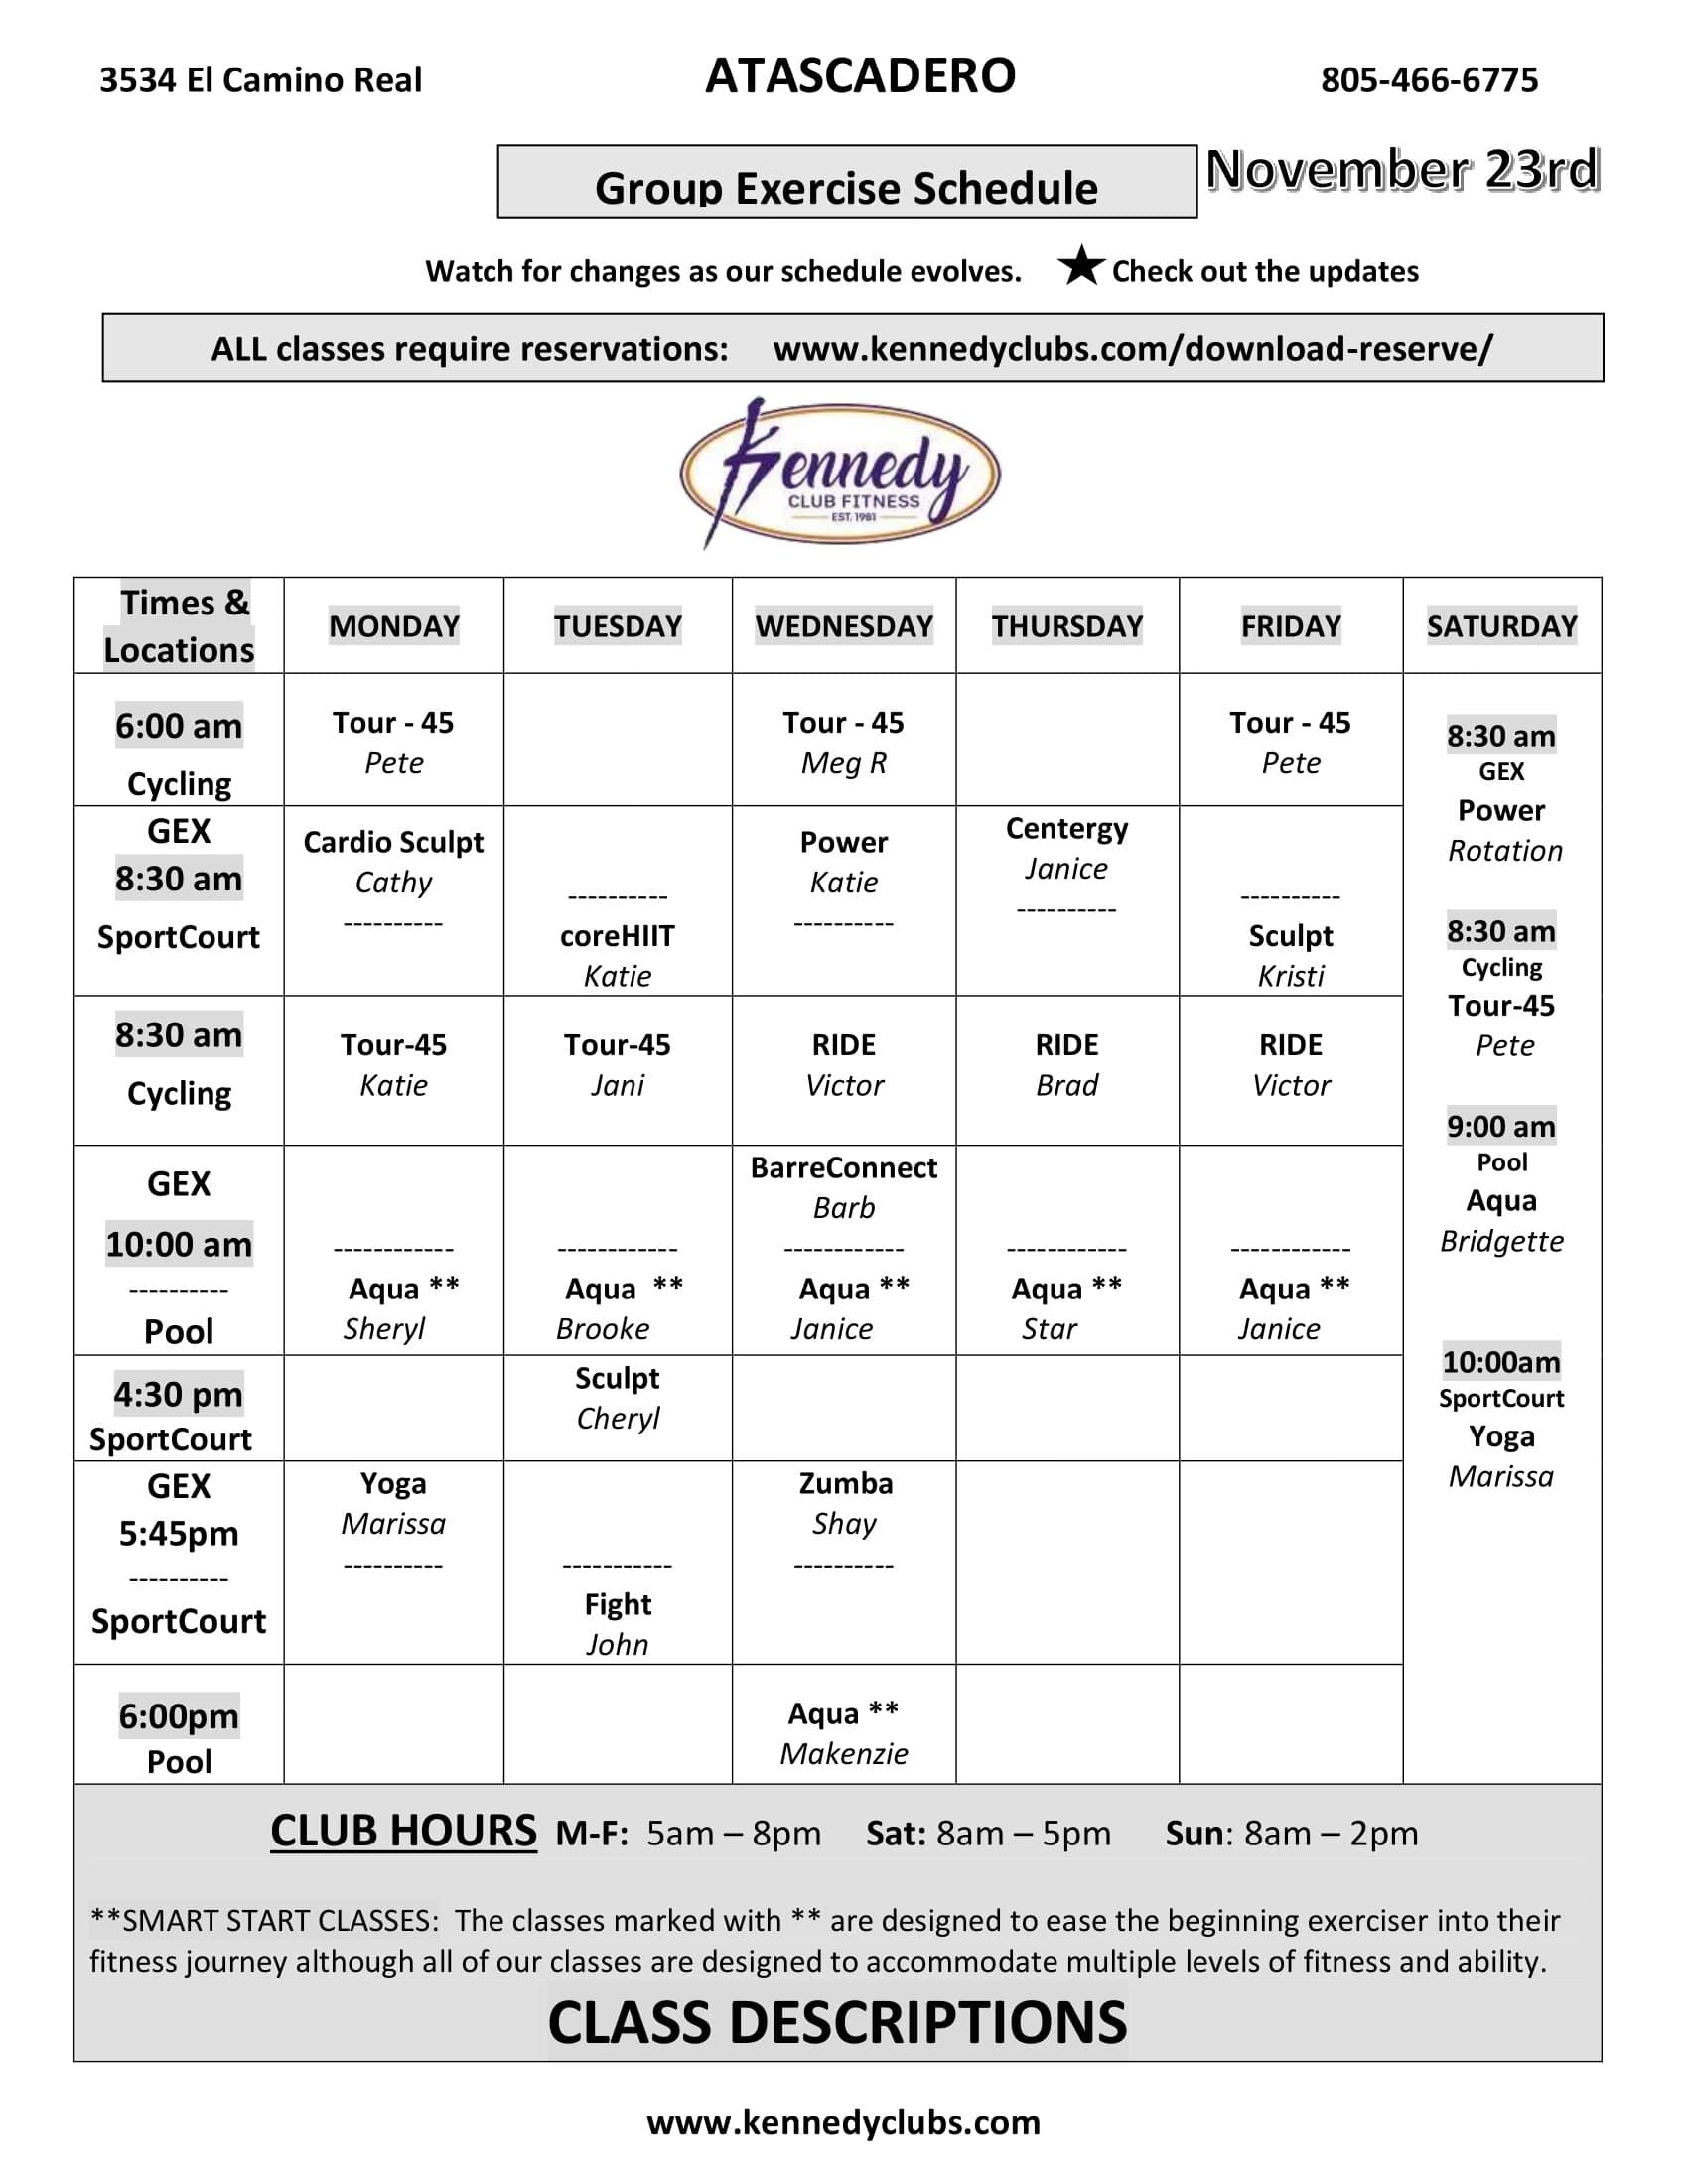 Kennedy Club Fitness Atascadero Group Exercise Schedule 11 23 2020